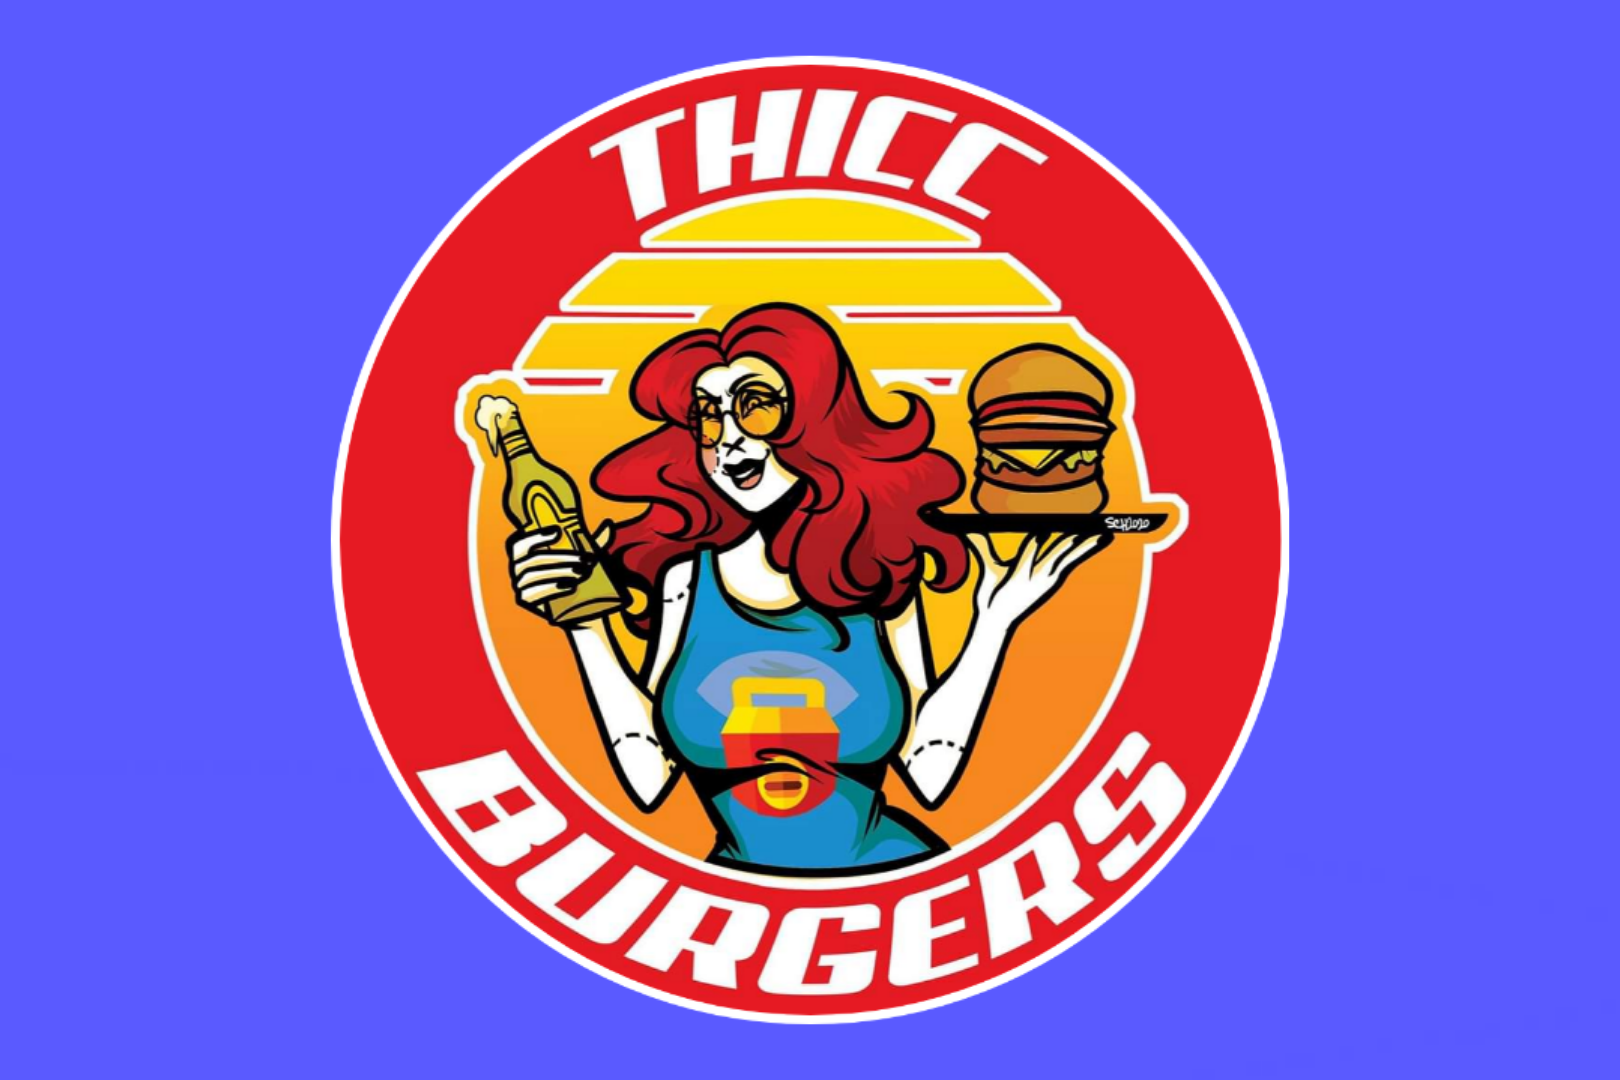 thicc burgers